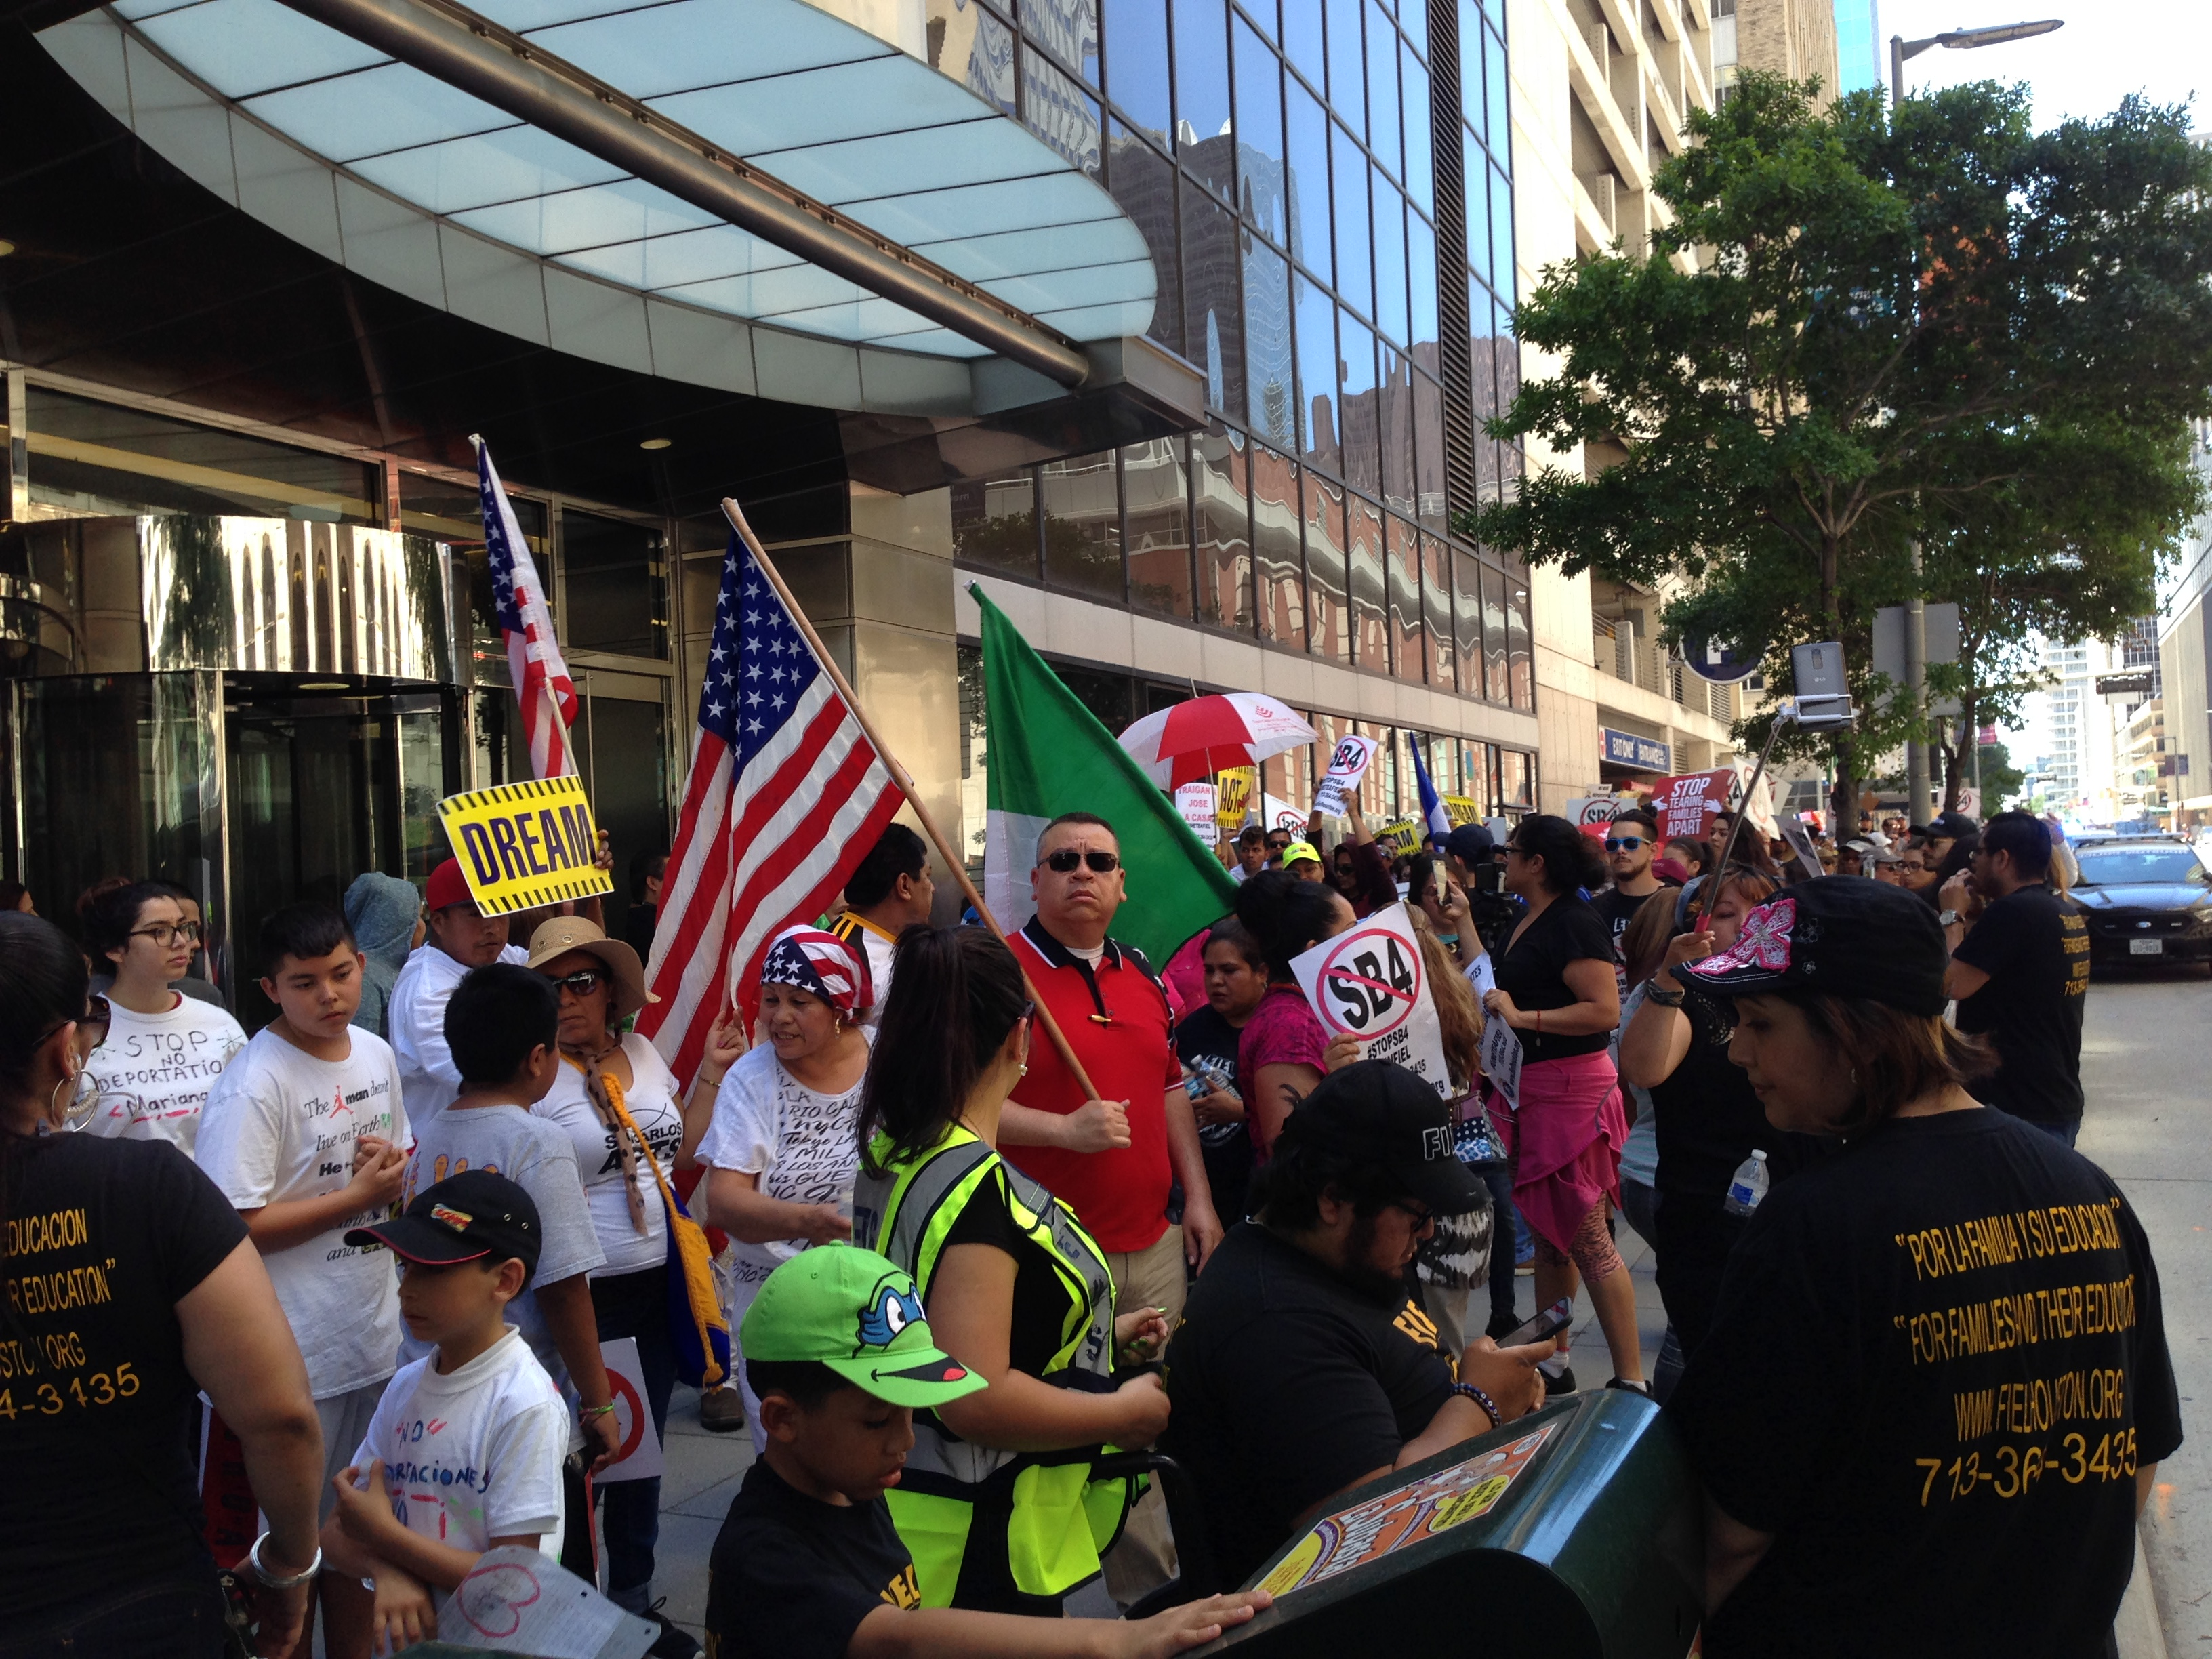 About 150 marchers asked for the end of deportations and for Texas lawmakers not to give the final approval to SB 4, a bill advancing in the Legislature that aims to entitle police officers to ask about immigration documents.